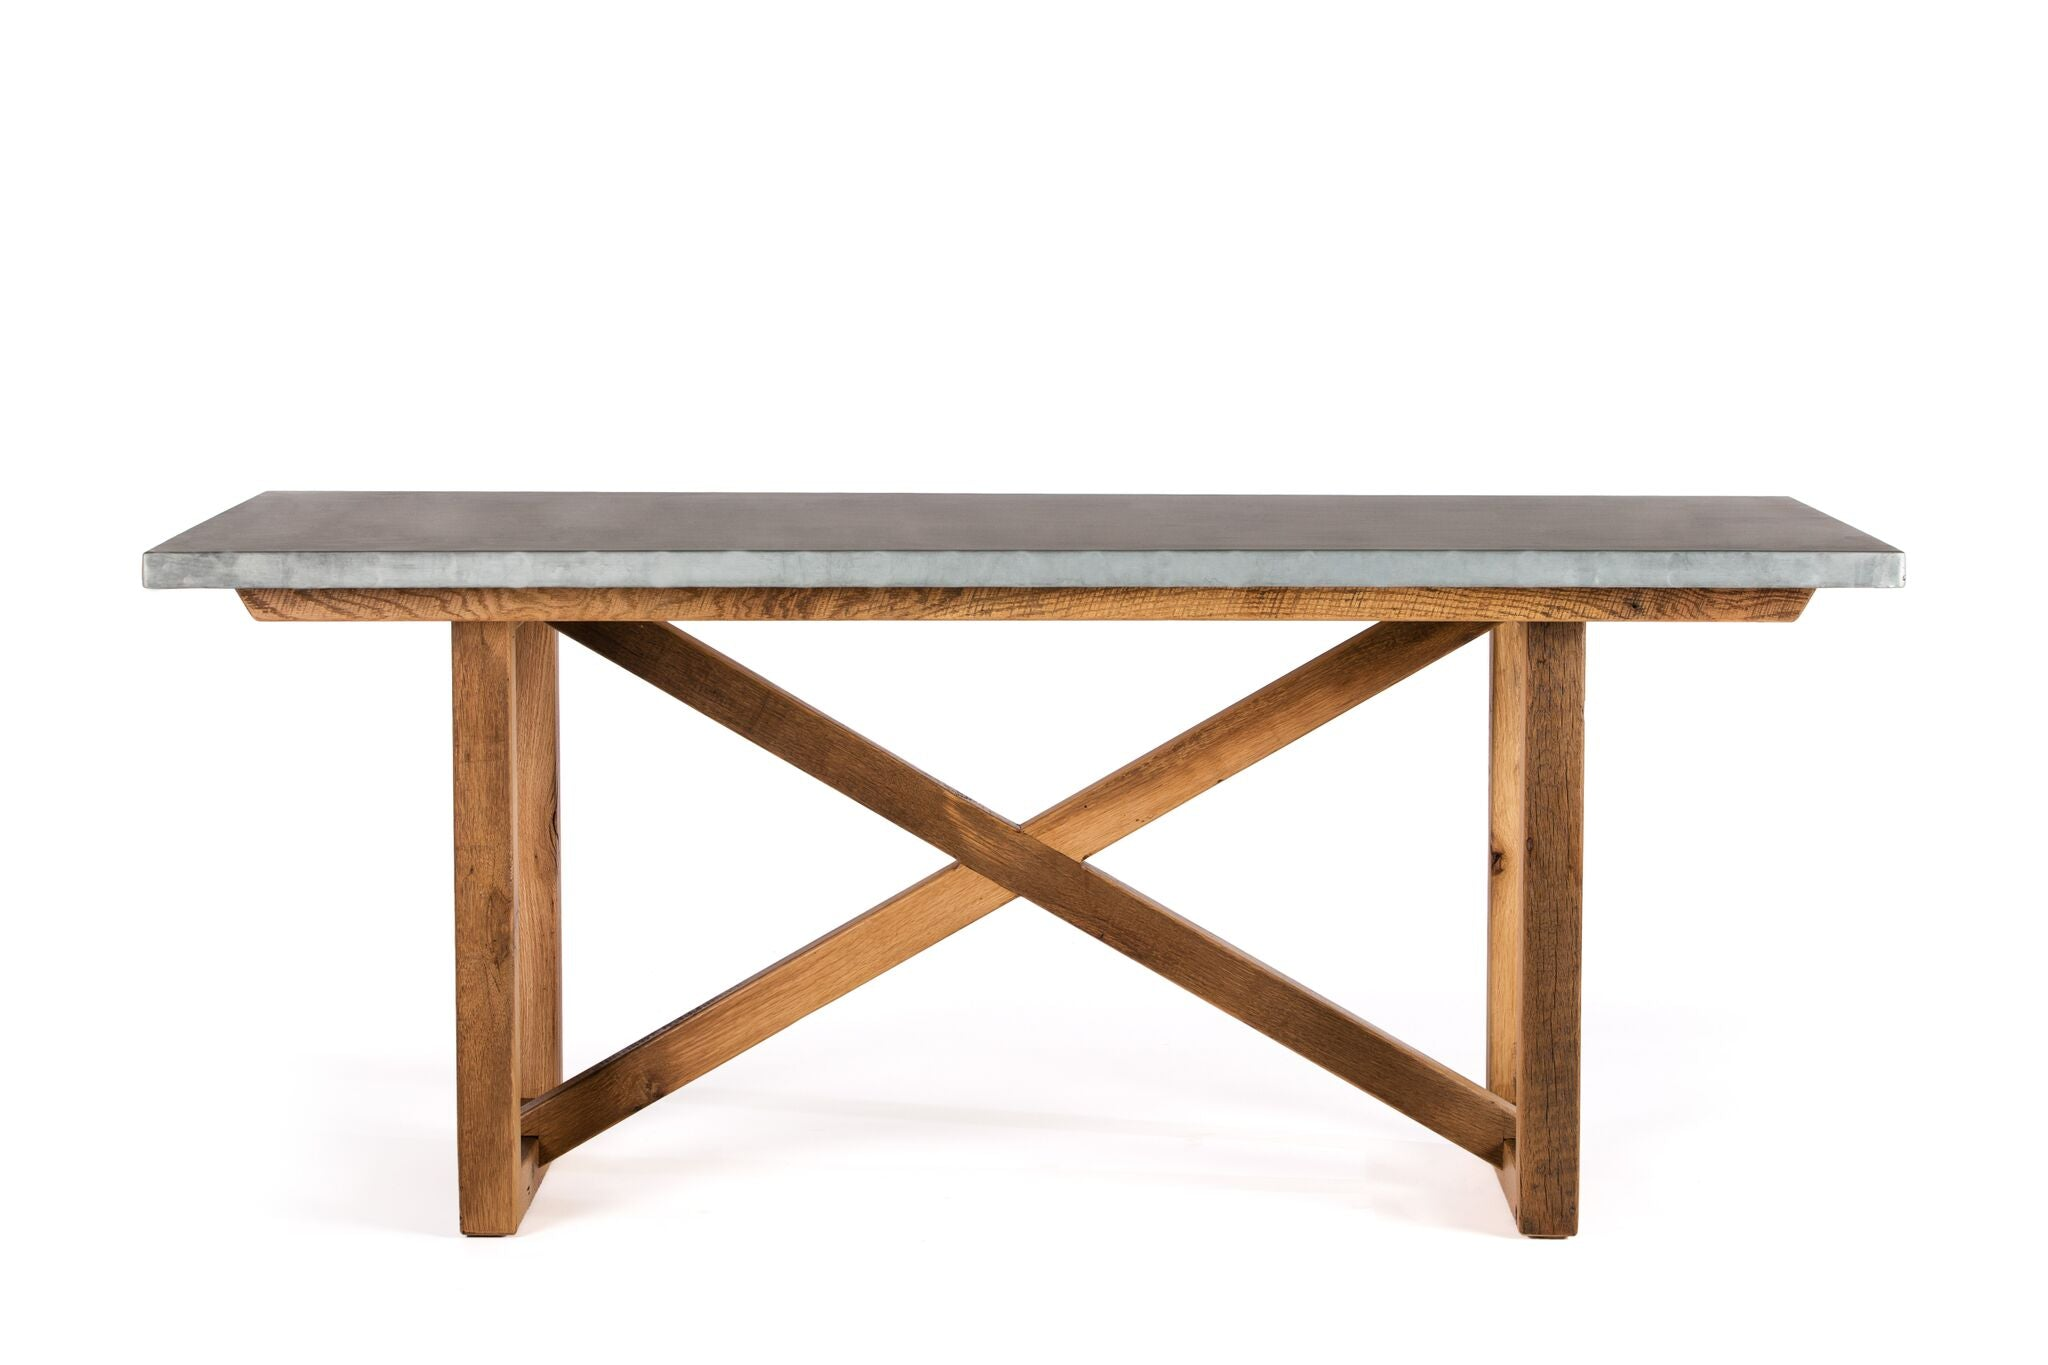 Zinc Rectangular Table | Astor Table | CLASSIC | Natural Ash | CUSTOM SIZE L 60 W 37 H 30 | kingston-krafts-zinc-tables.